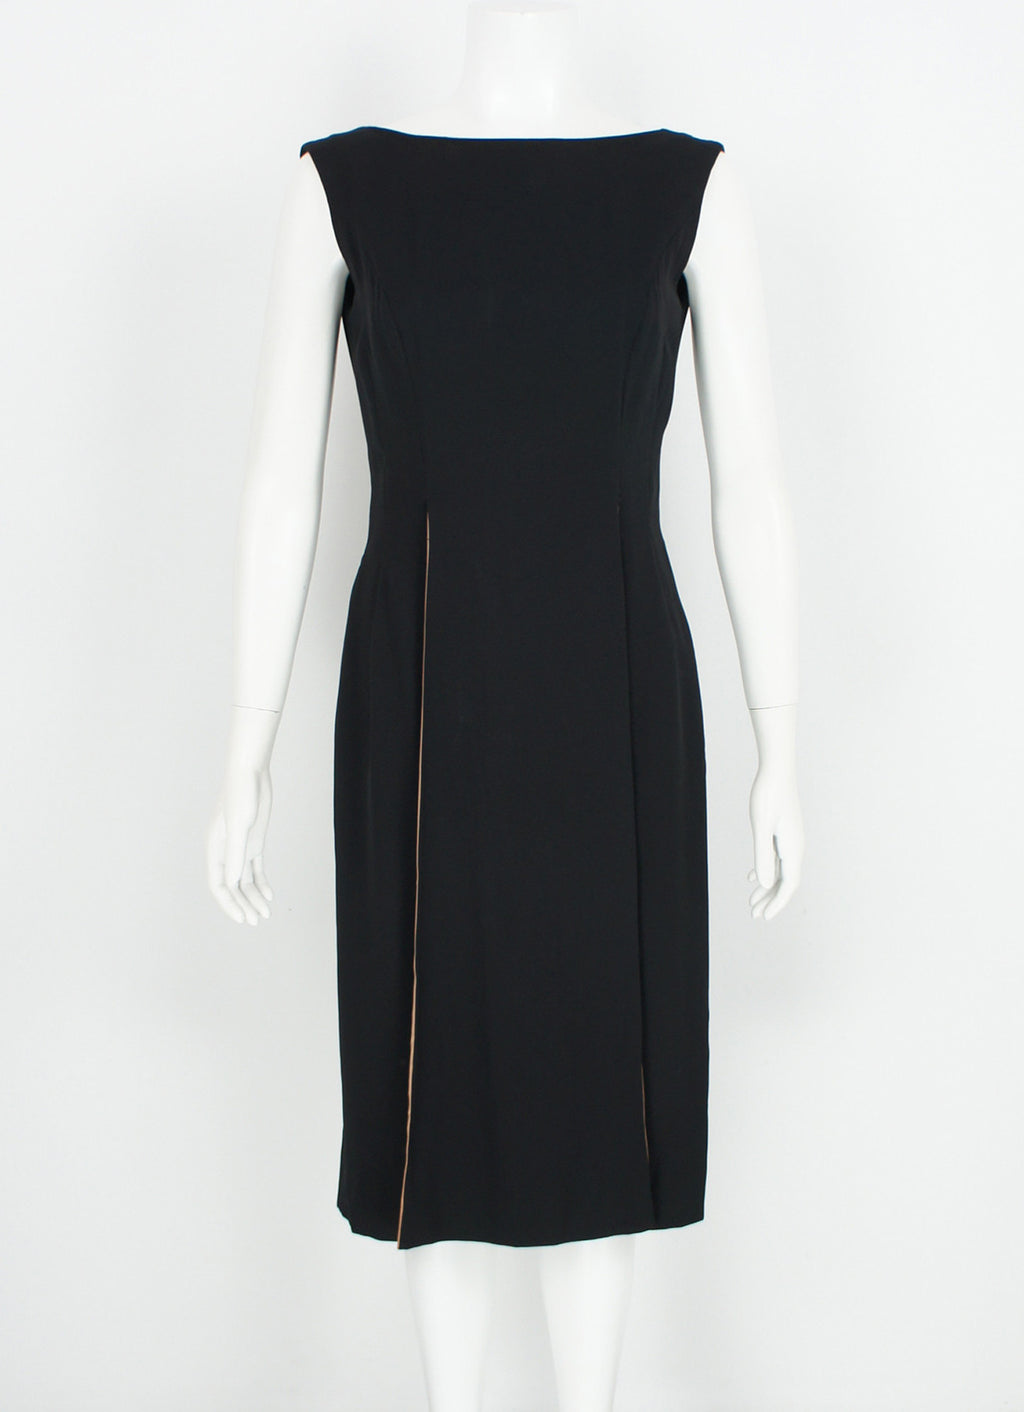 Vintage 1950's Cocktail Little Black Dress